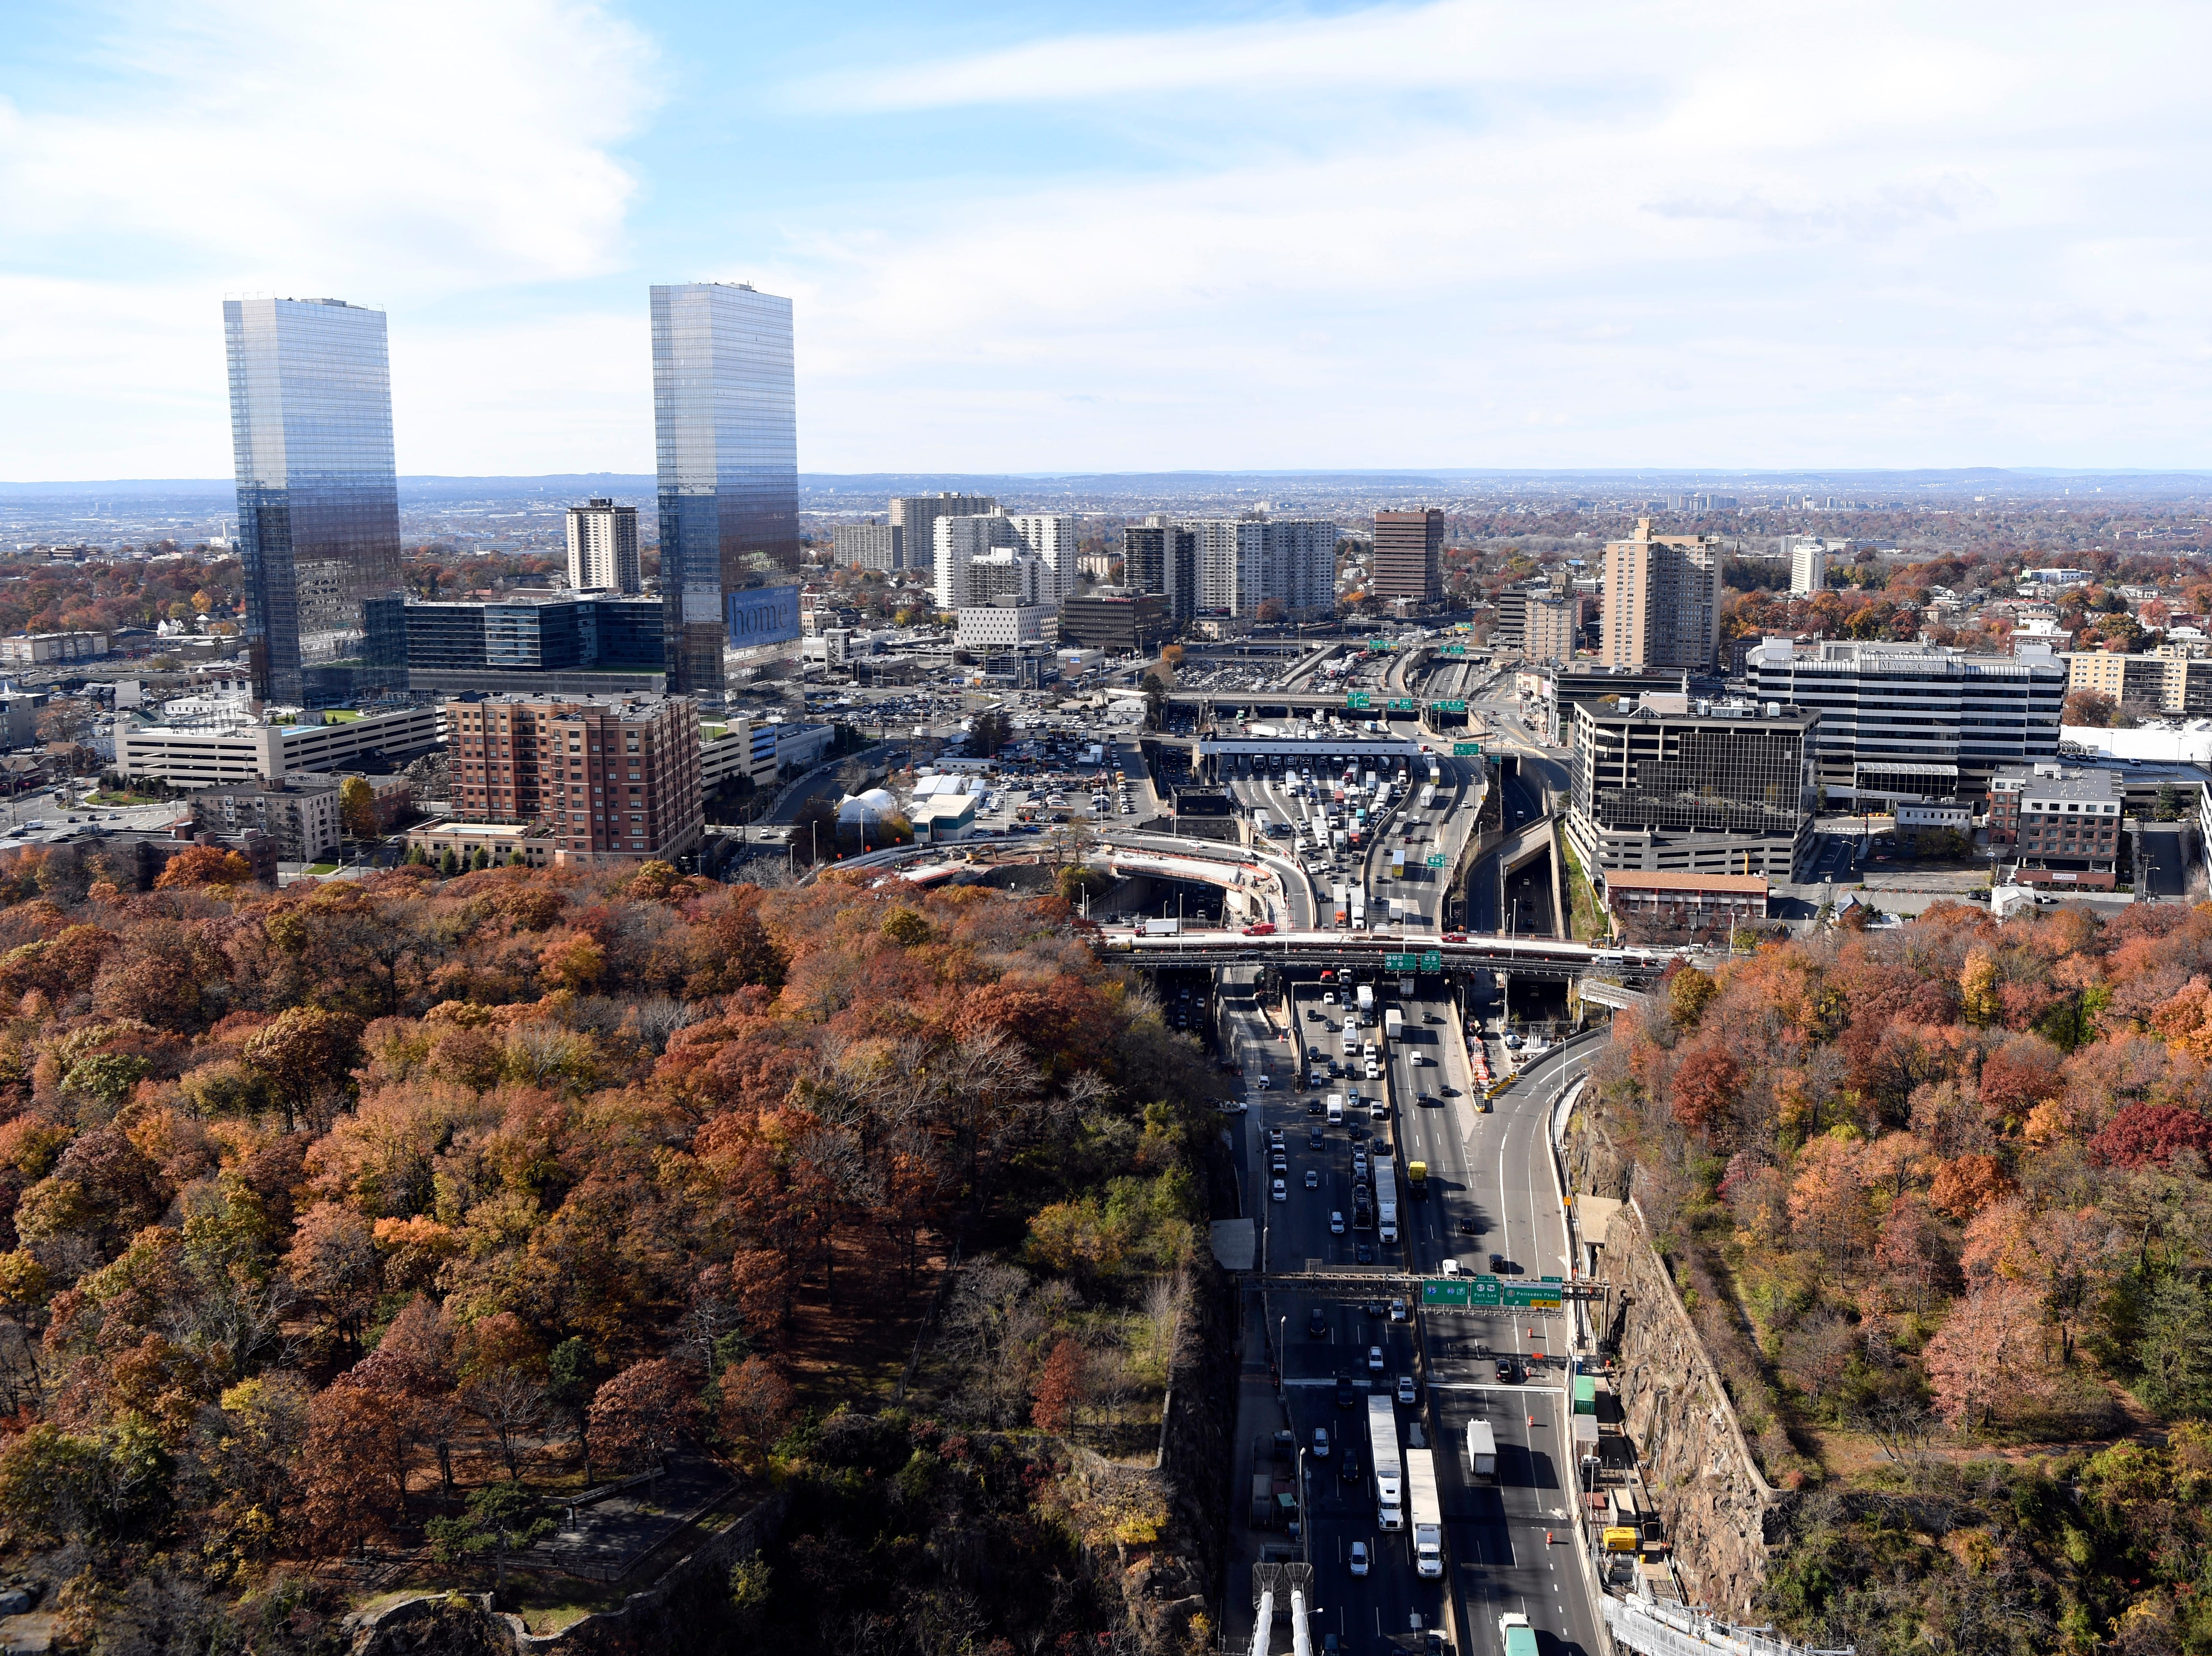 The view of Fort Lee seen from the George Washington Bridge on Wednesday, Nov. 14, 2018.